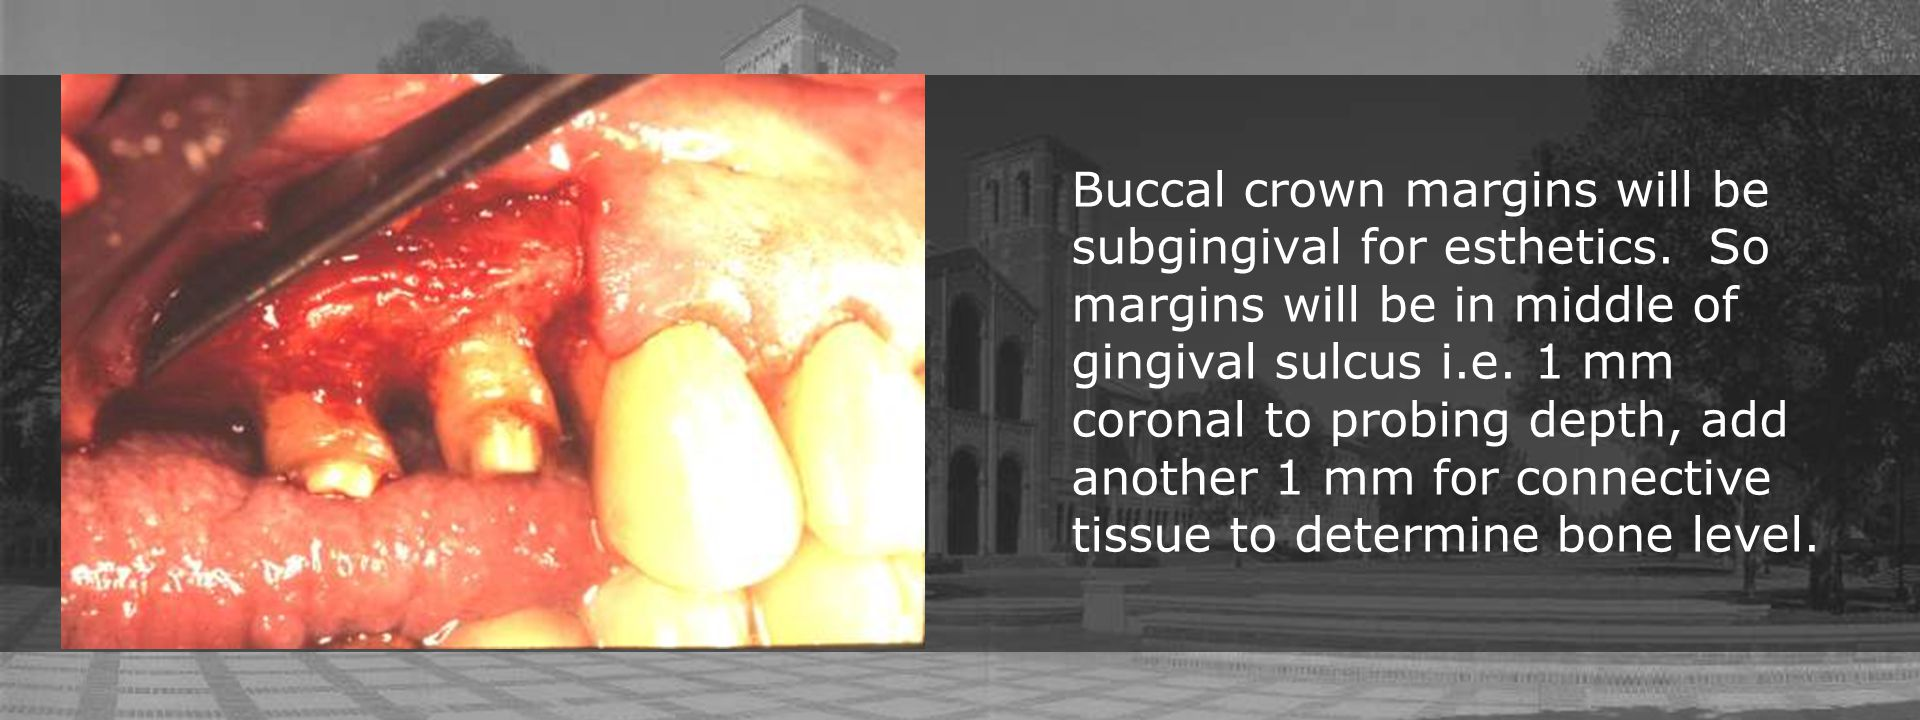 Buccal crown margins will be subgingival for esthetics